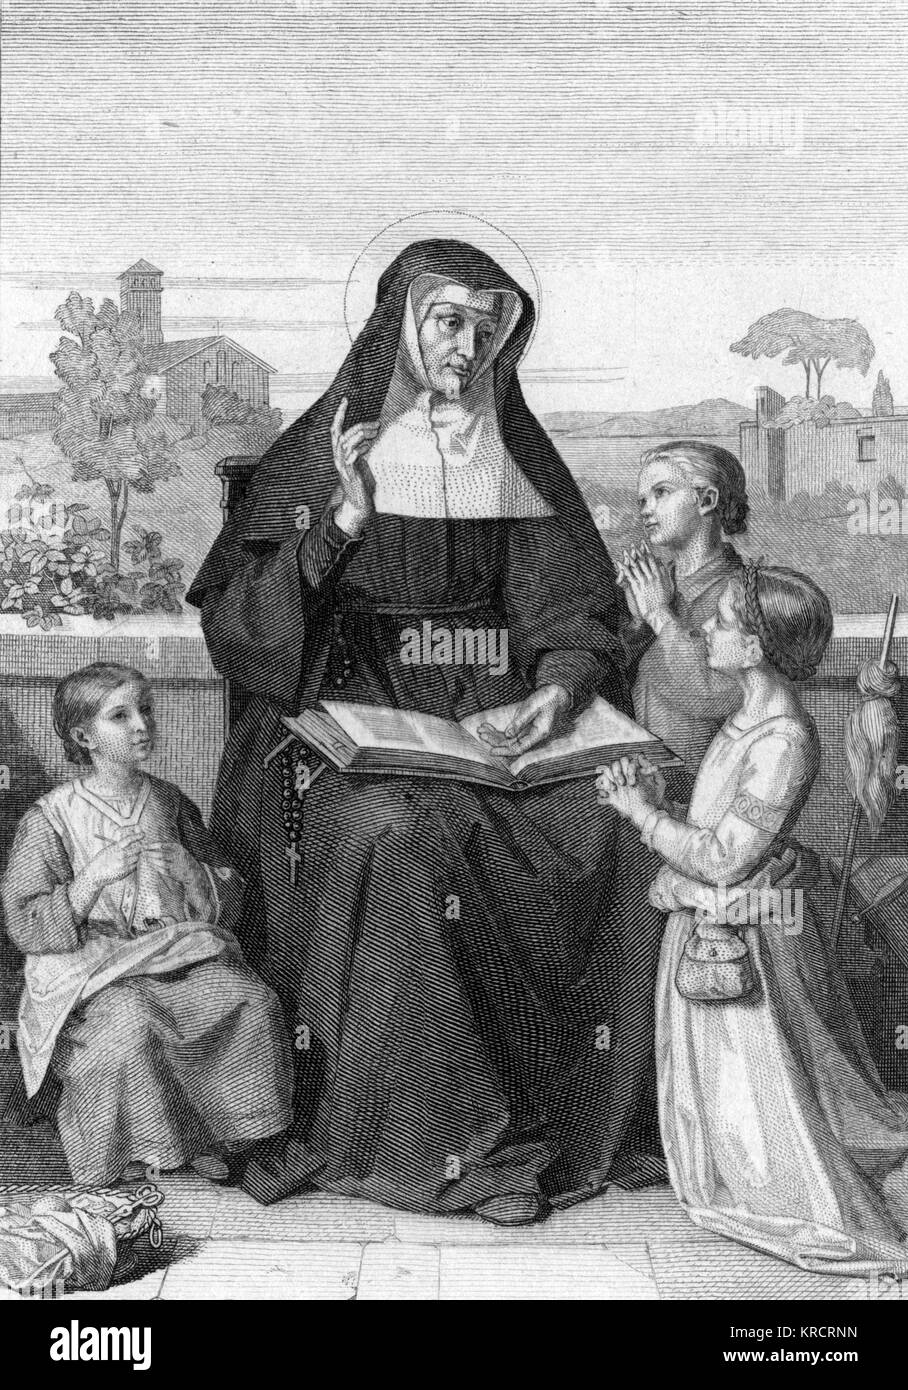 Saint Angela De Merici Italian nun and educator; canonised in 1807 Date: circa 1500s - Stock Image